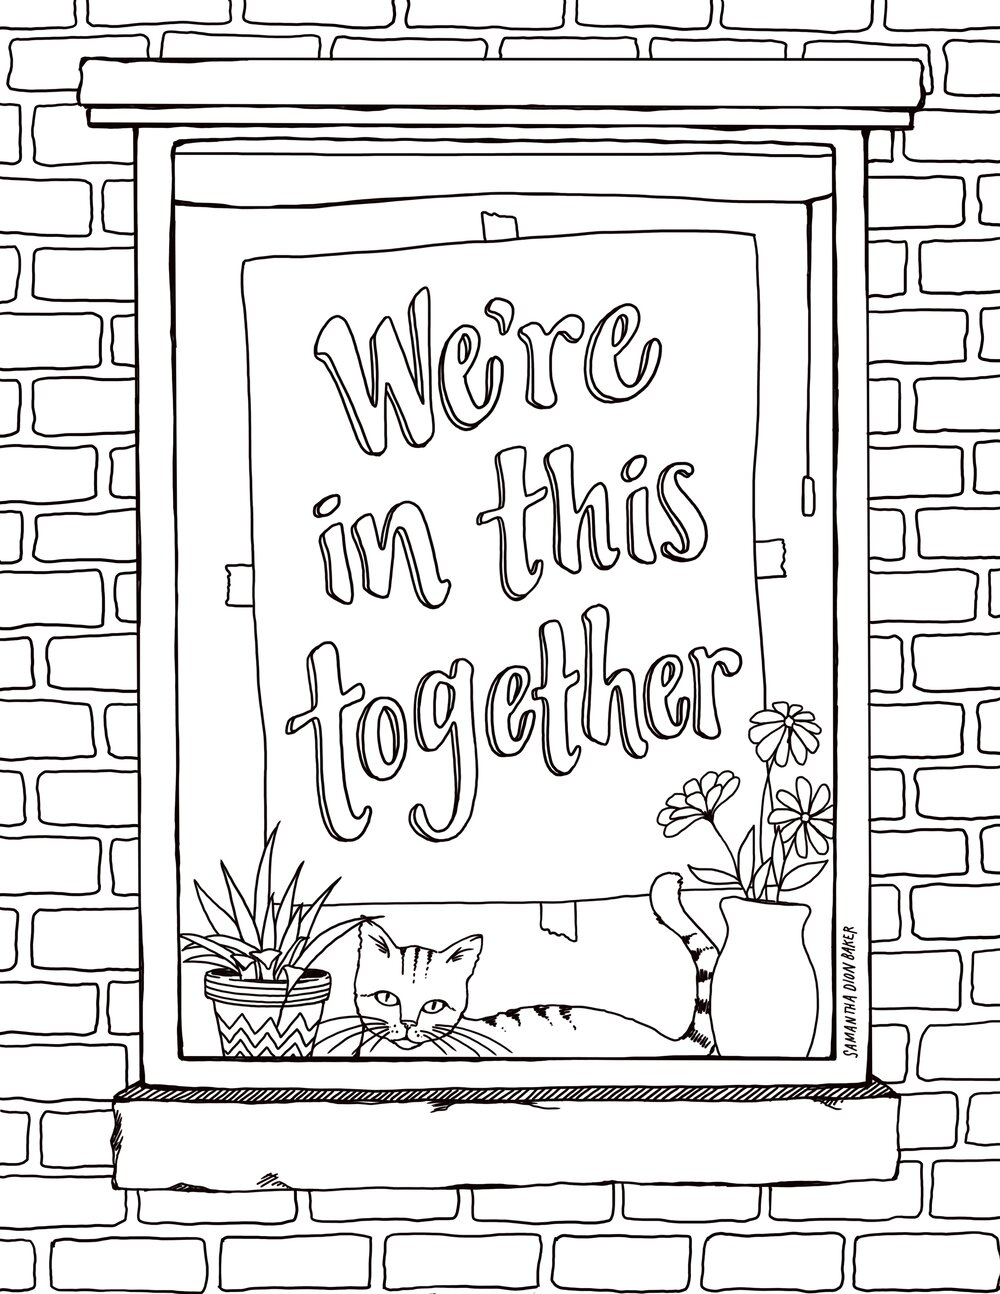 Free Coloring Pages for Adults and Kids Skillshare in